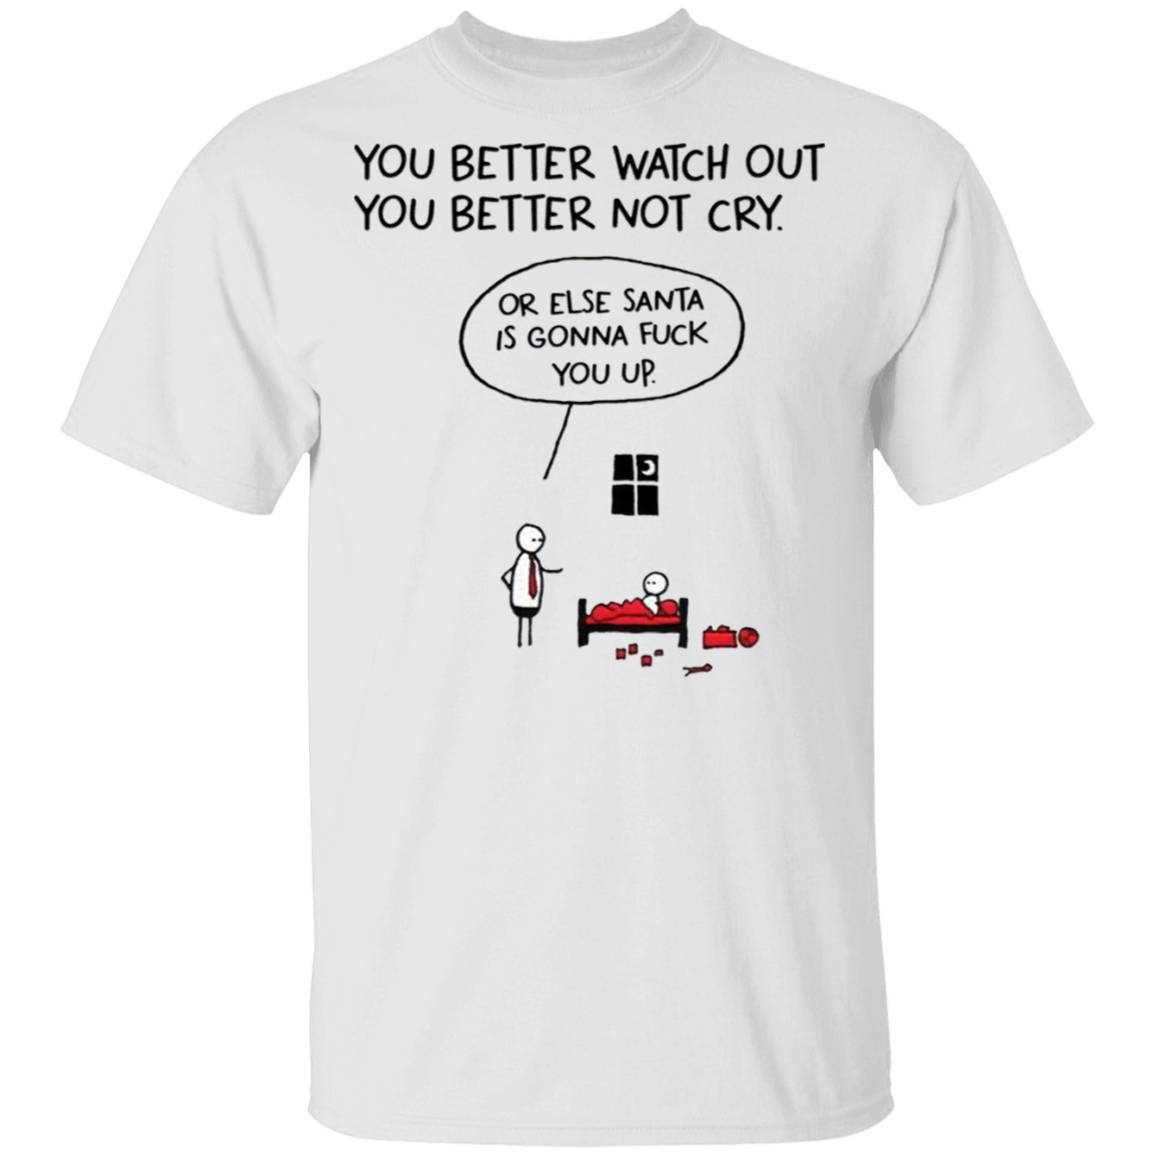 You better watch out or else santa is gonna fuck you up Christmas T-Shirt